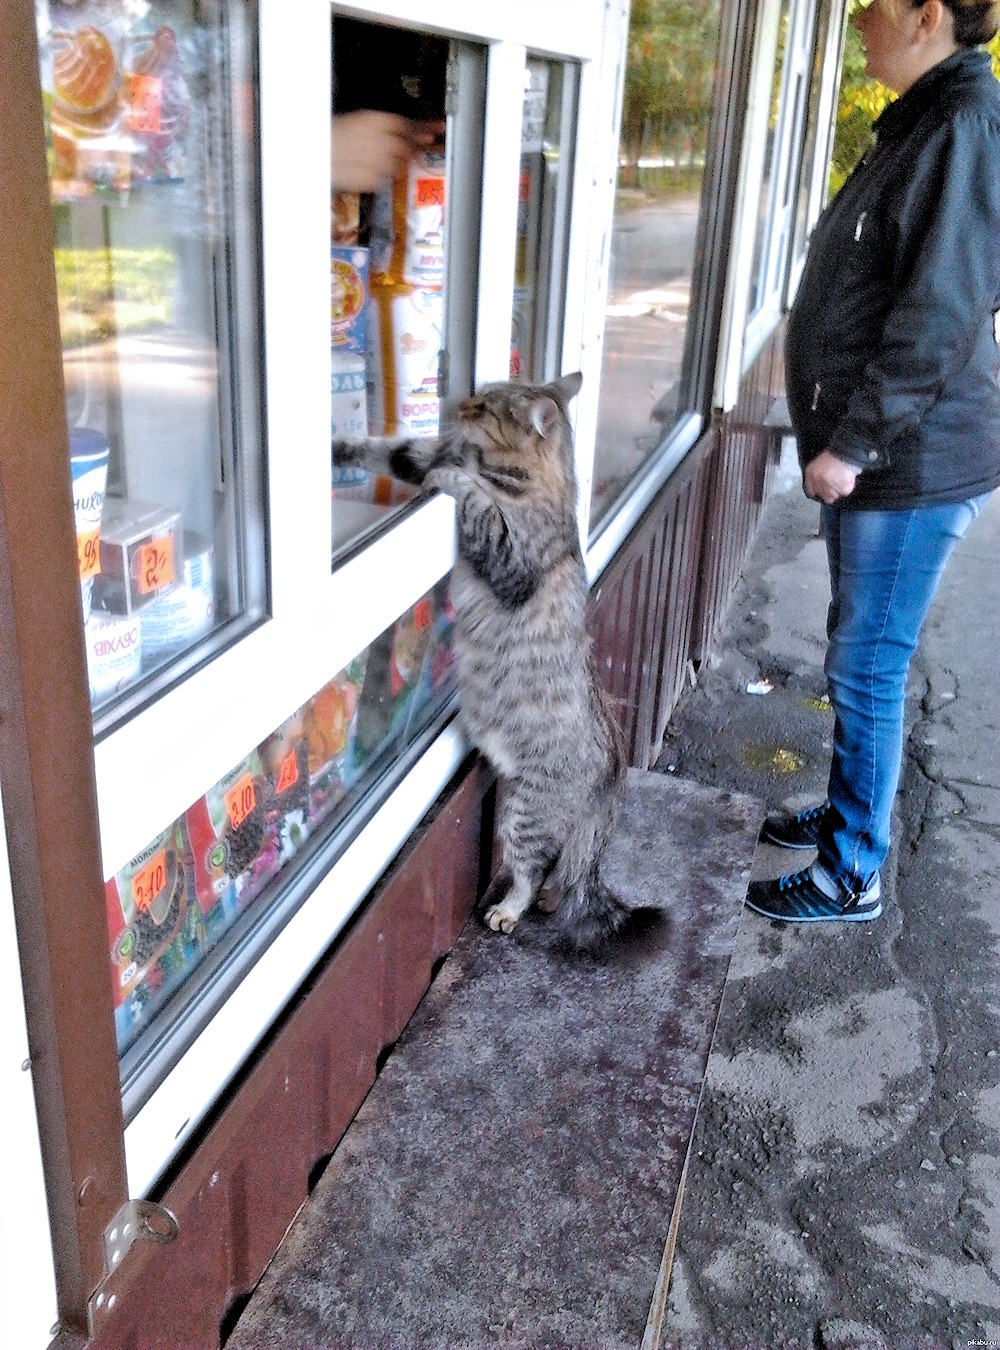 00 Cat in Russia. A Herring and a Carton of Milk, Please... 21.10.13